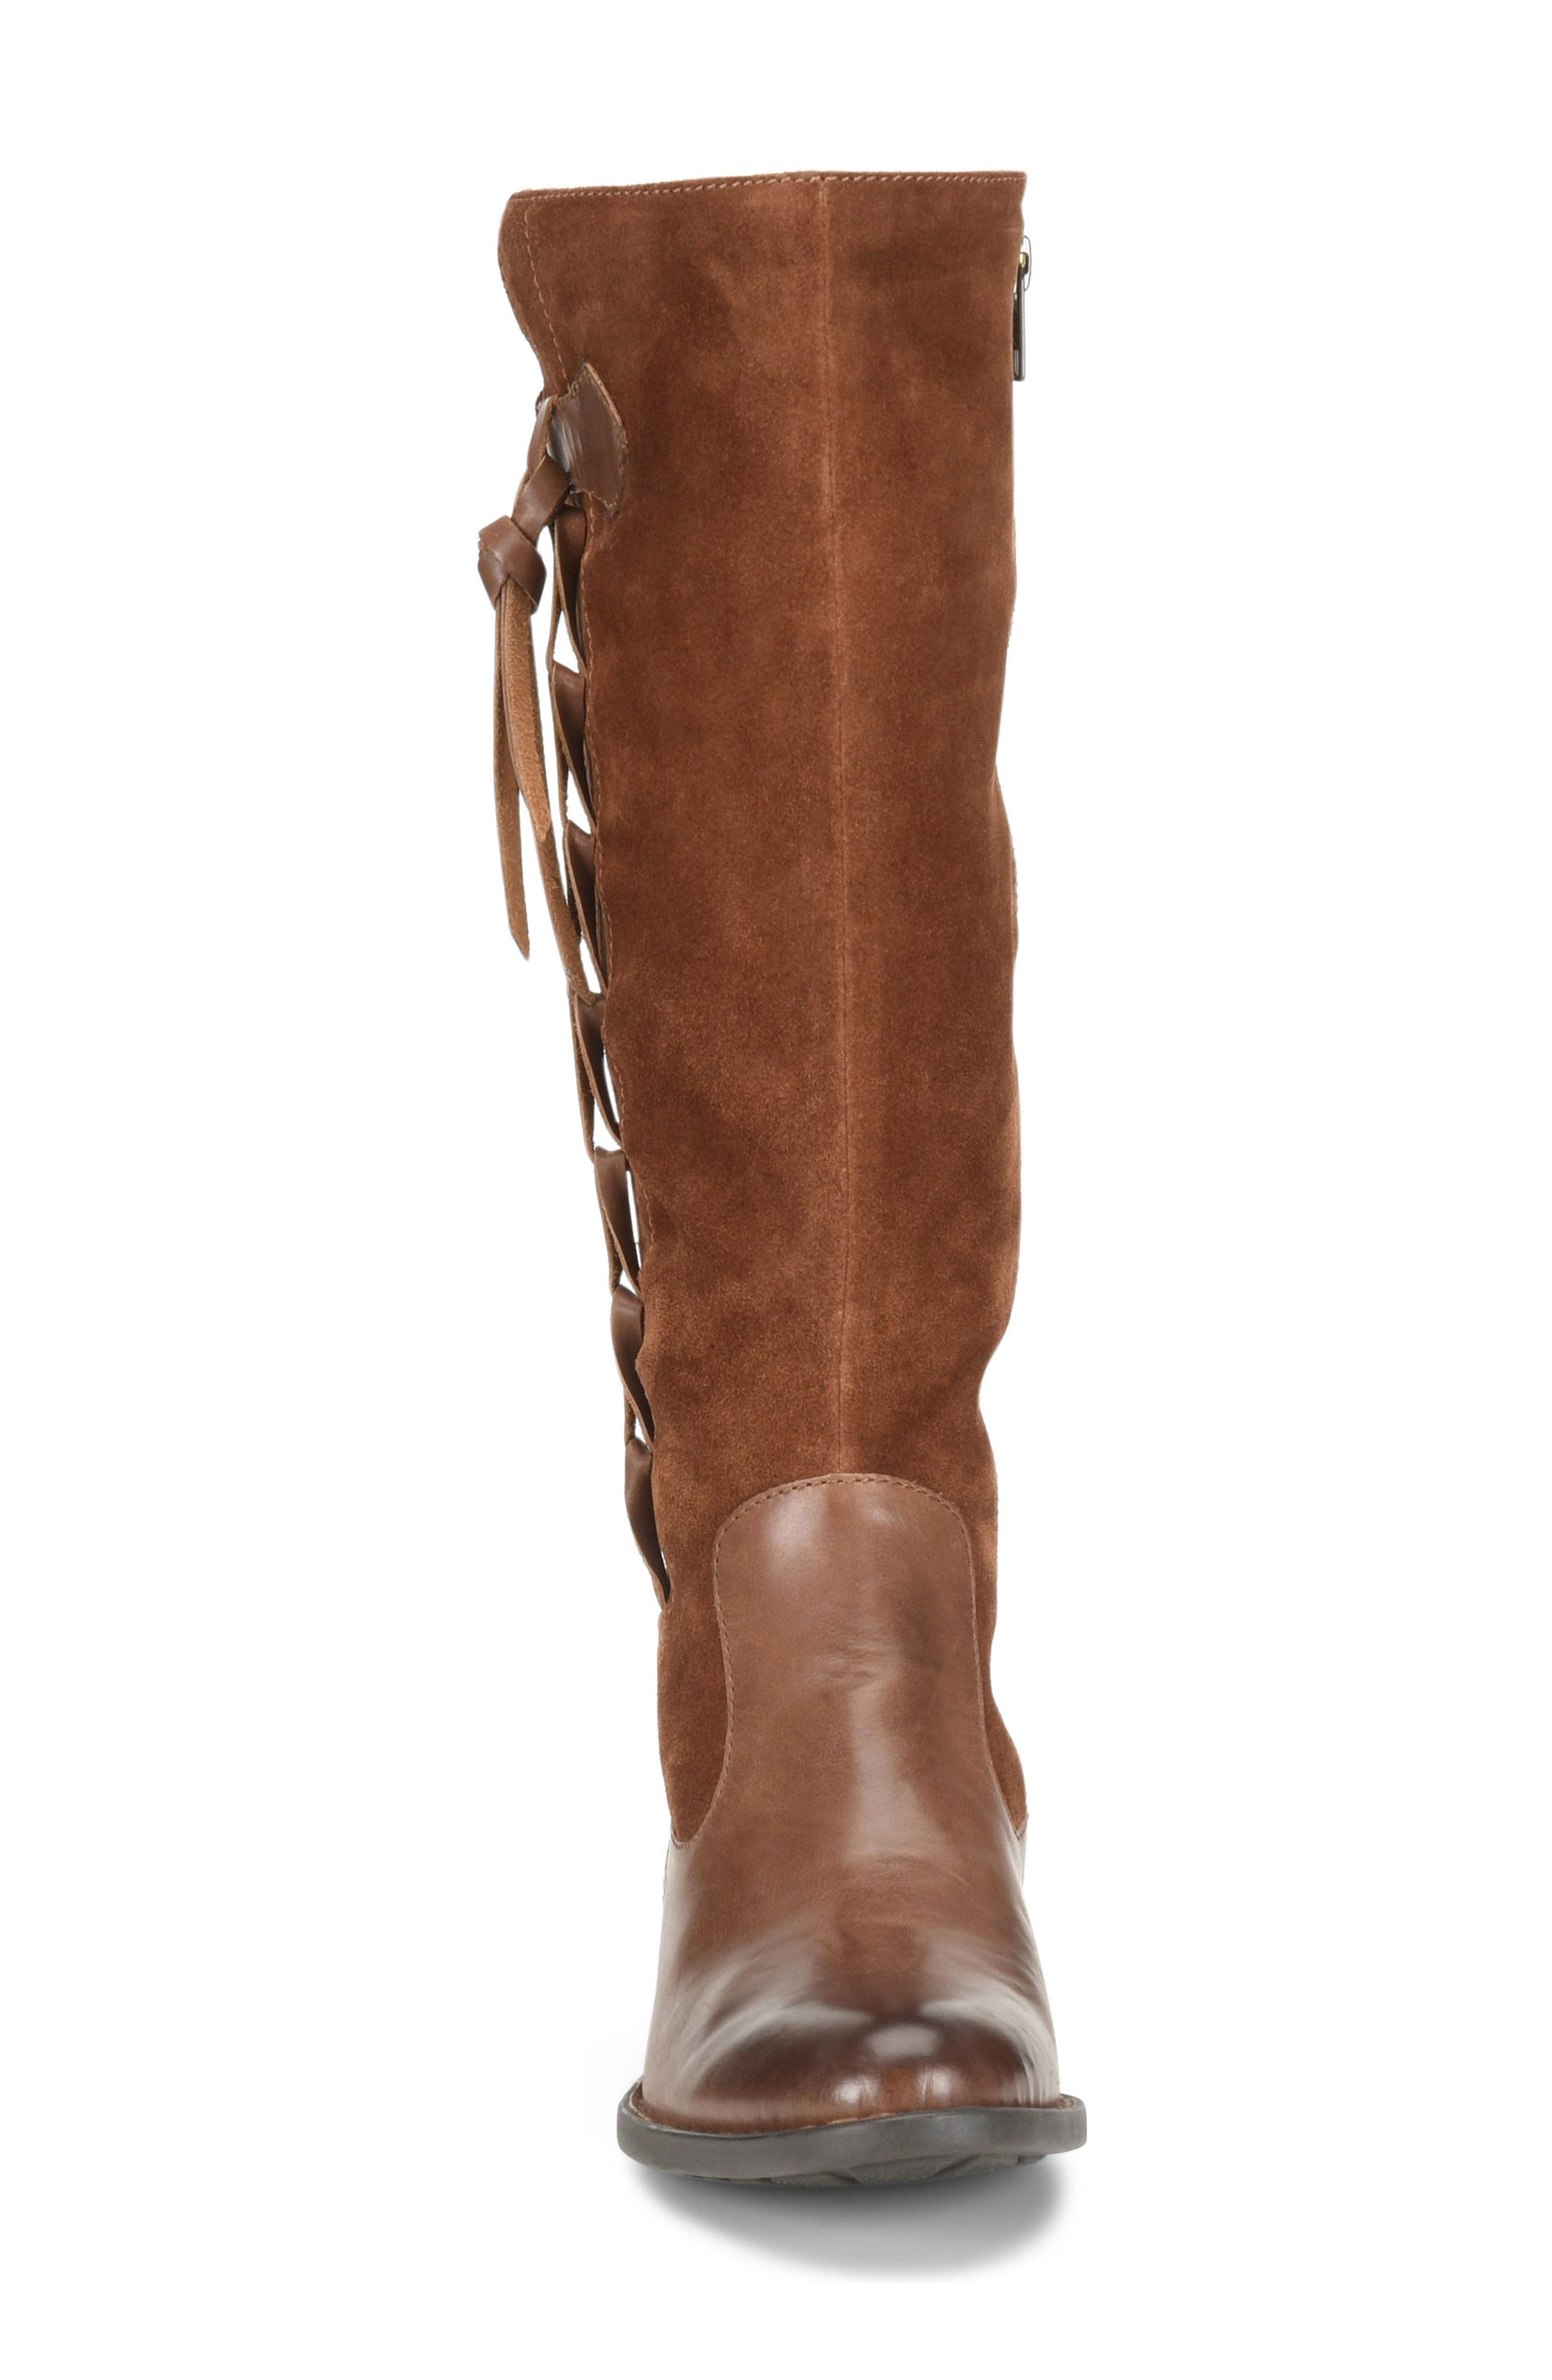 Cook Knee High Boot,                             Alternate thumbnail 4, color,                             Brown/ Rust Combo